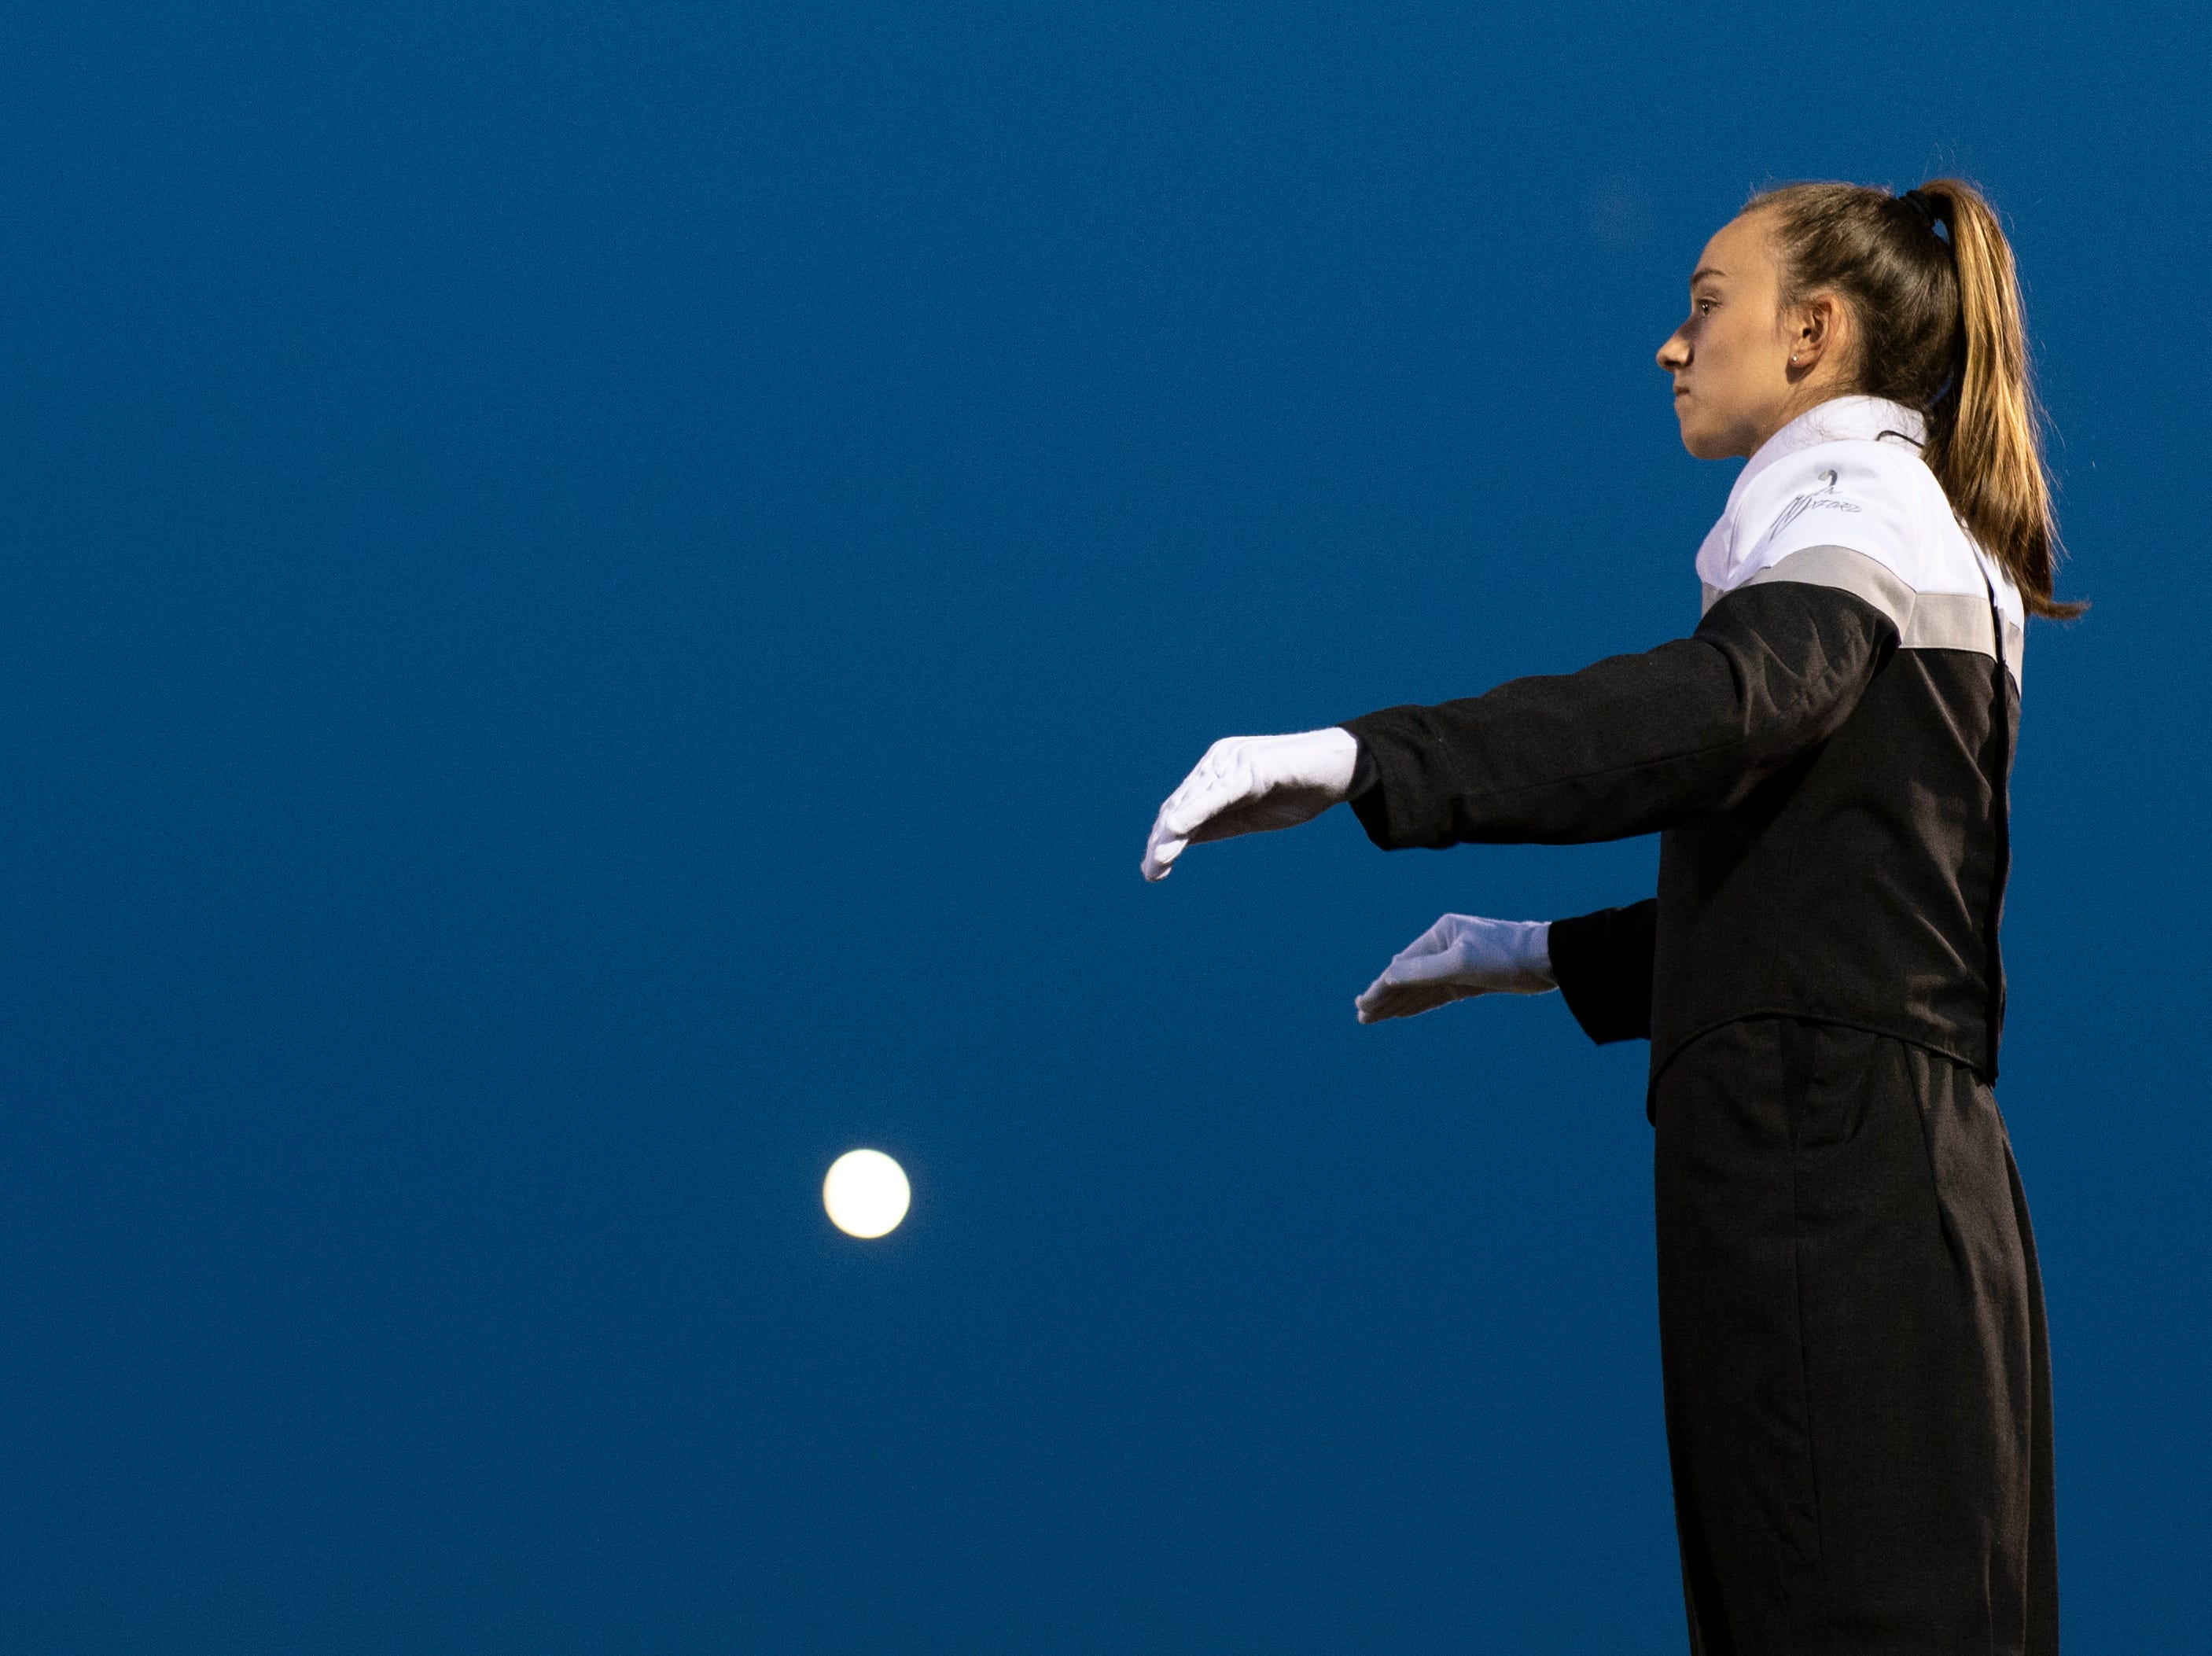 New Oxford drum major Daelyn Stabler directs the band at halftime, Friday, Aug. 24, 2018. The Eagles skimmed past the Colonials, 28-22.